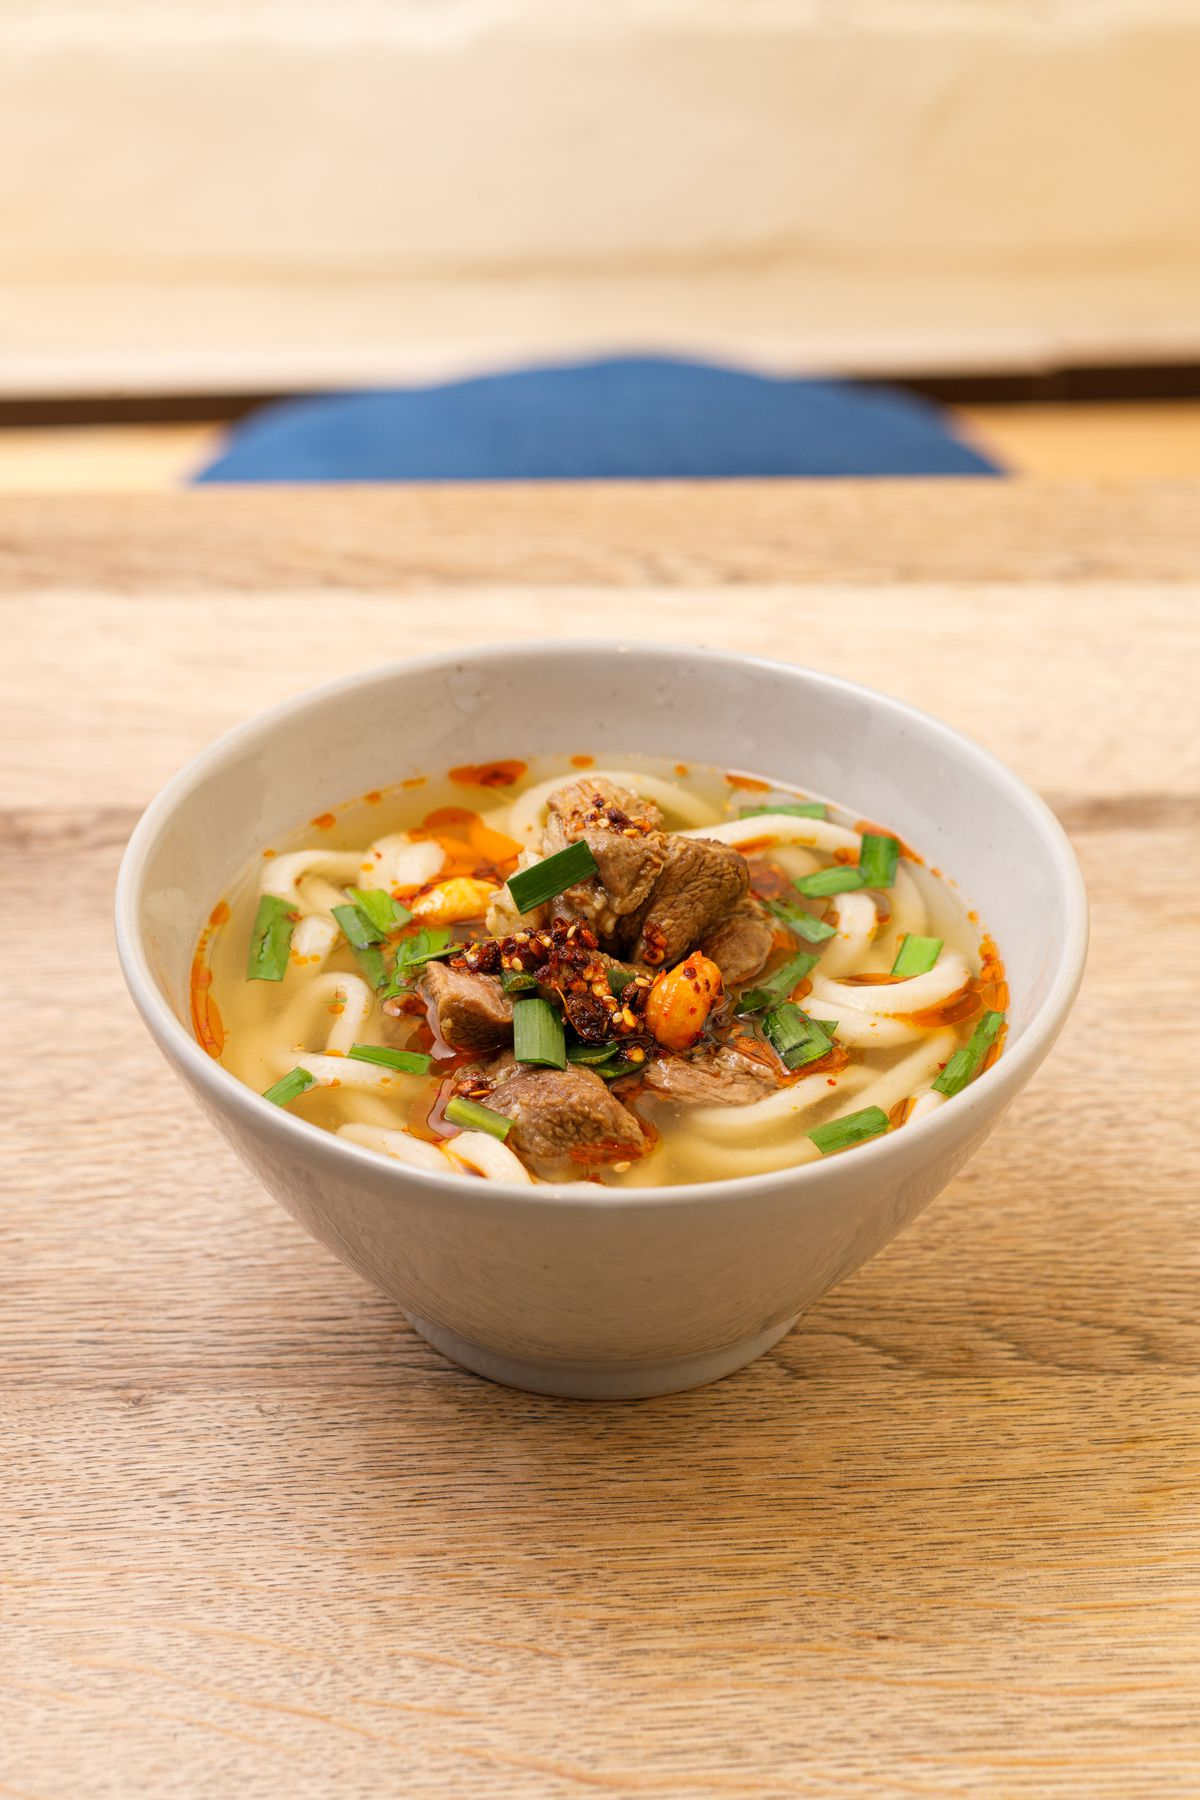 A bowl of udon noodles with beef shin and chilli oil, sitting on a light wood table